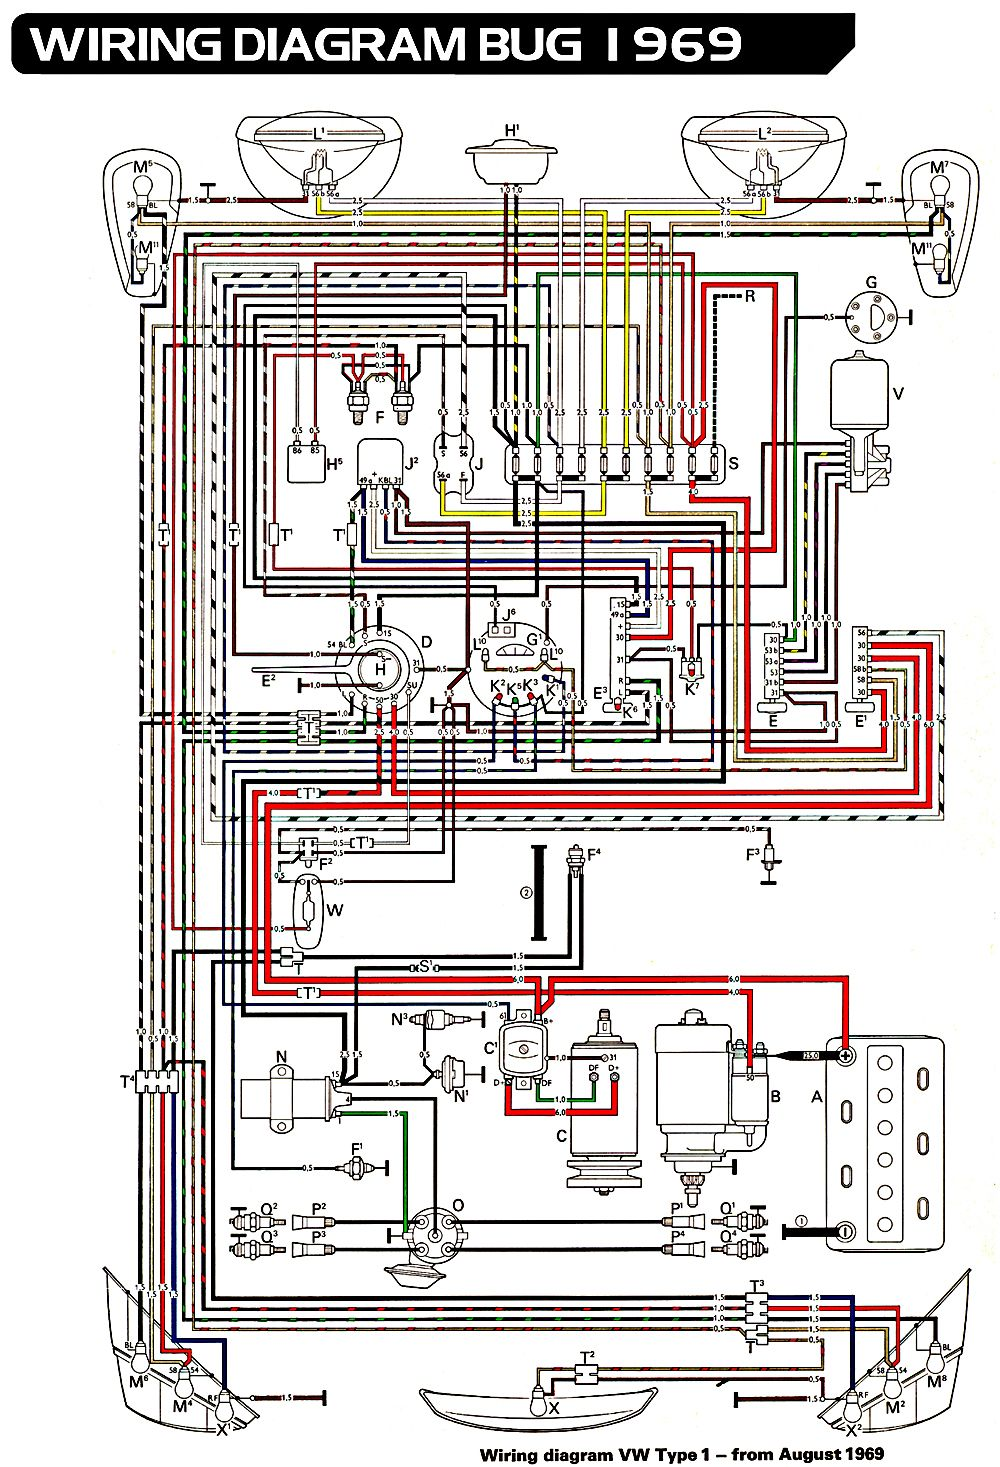 6d75c15875479254f26a32a8499d9044 volkswagen beetle wiring diagram 1966 vw beetle wiring vw bug wiring diagram at creativeand.co